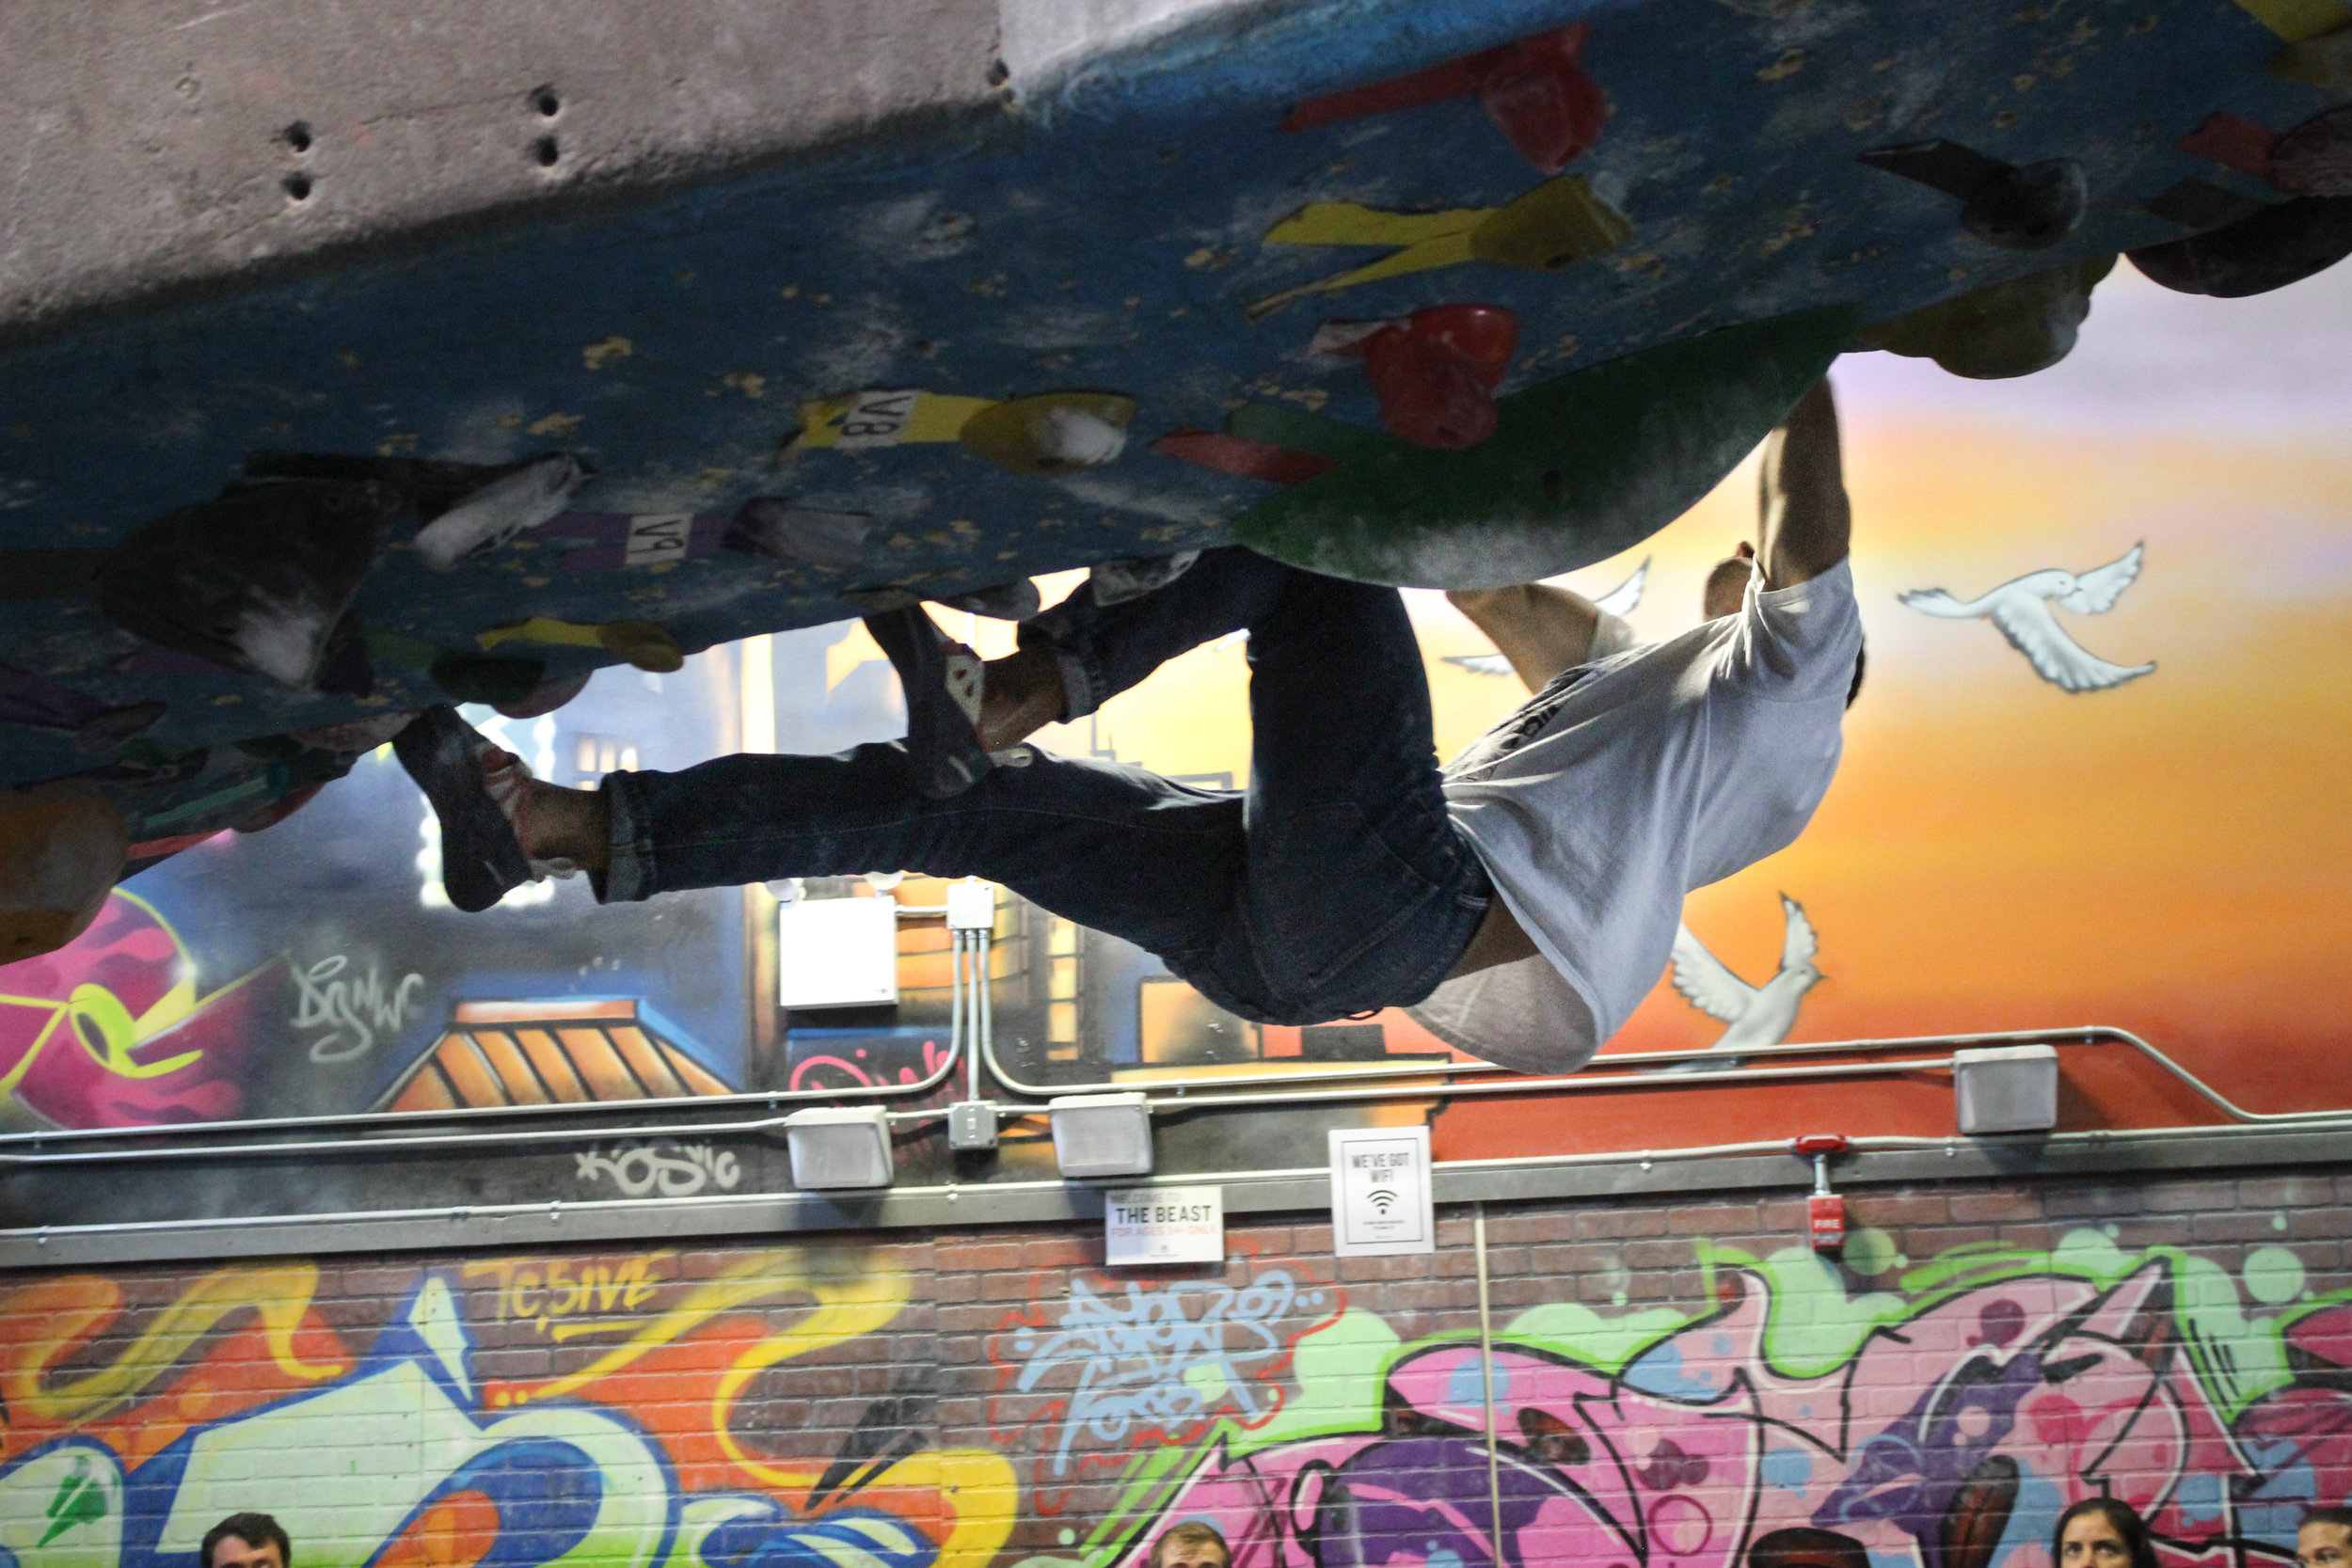 BROOKLYN BOULDERS: A POWERFUL AND FUN WAY TO GET IN SHAPE